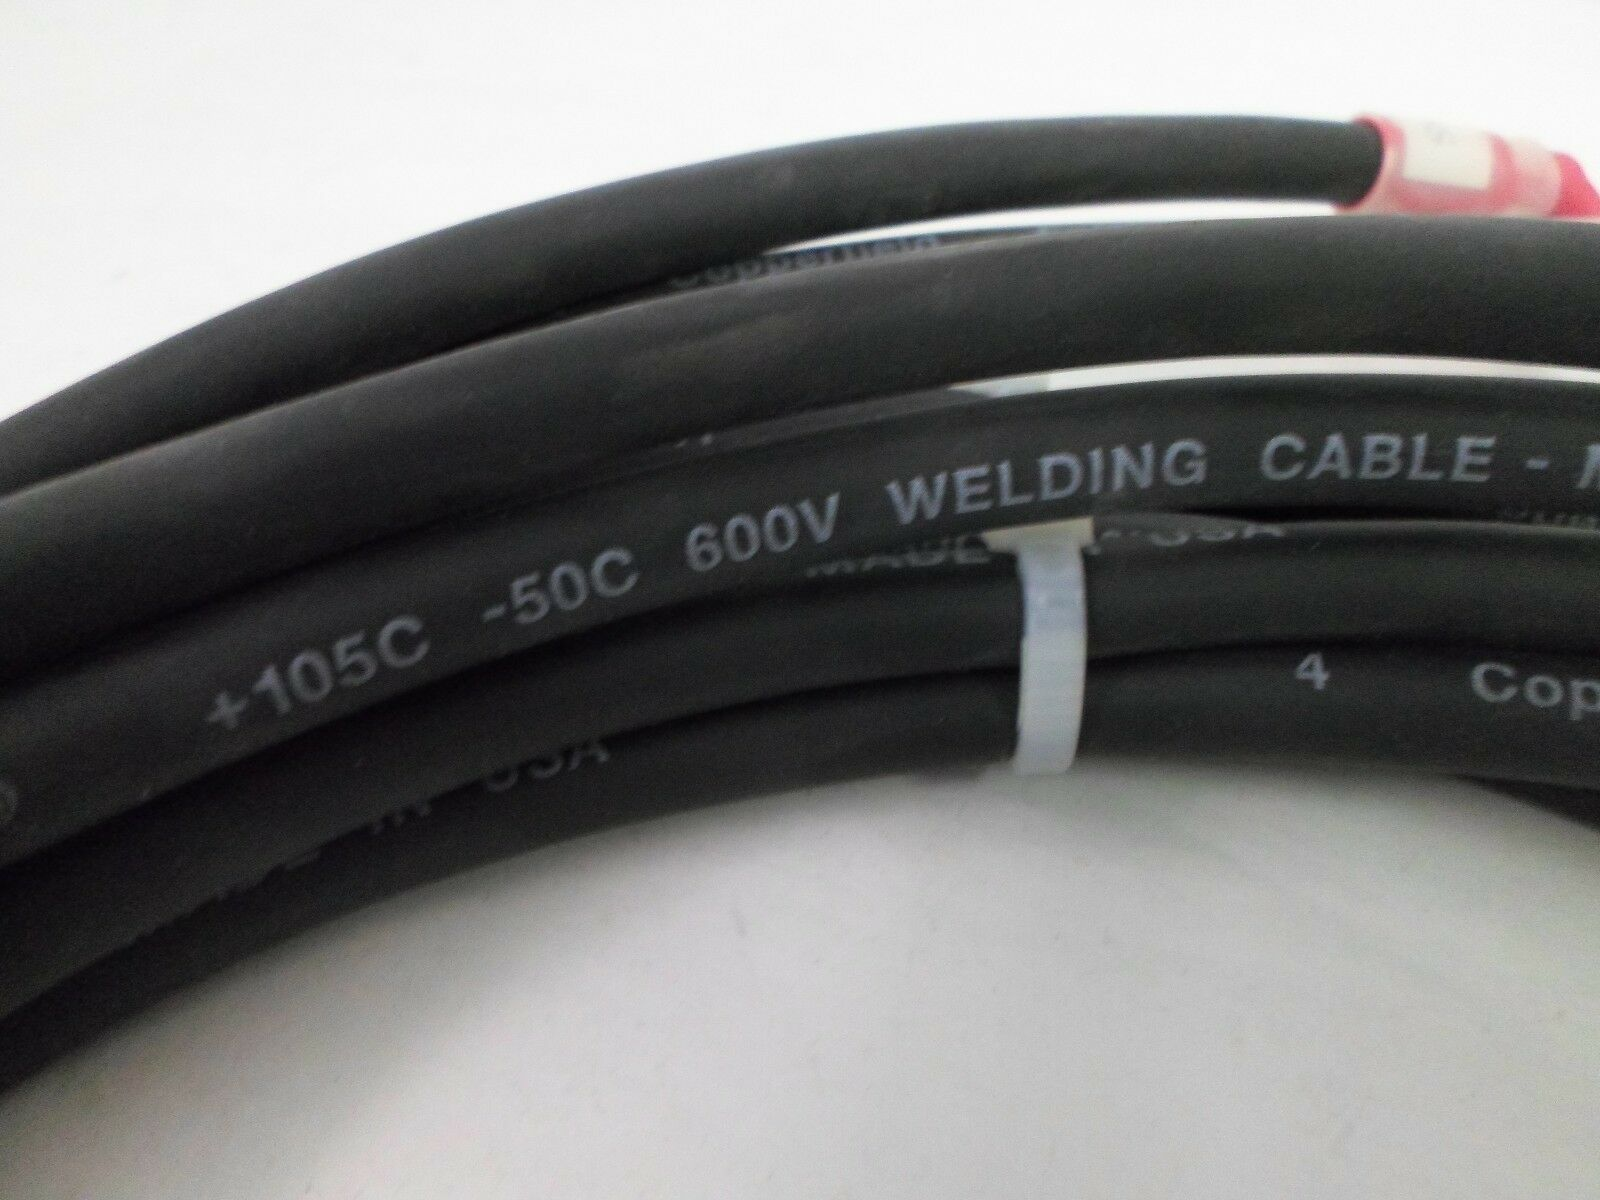 Copperfield Excelence 105c - 50c 600v Welding Cable 10\' | eBay